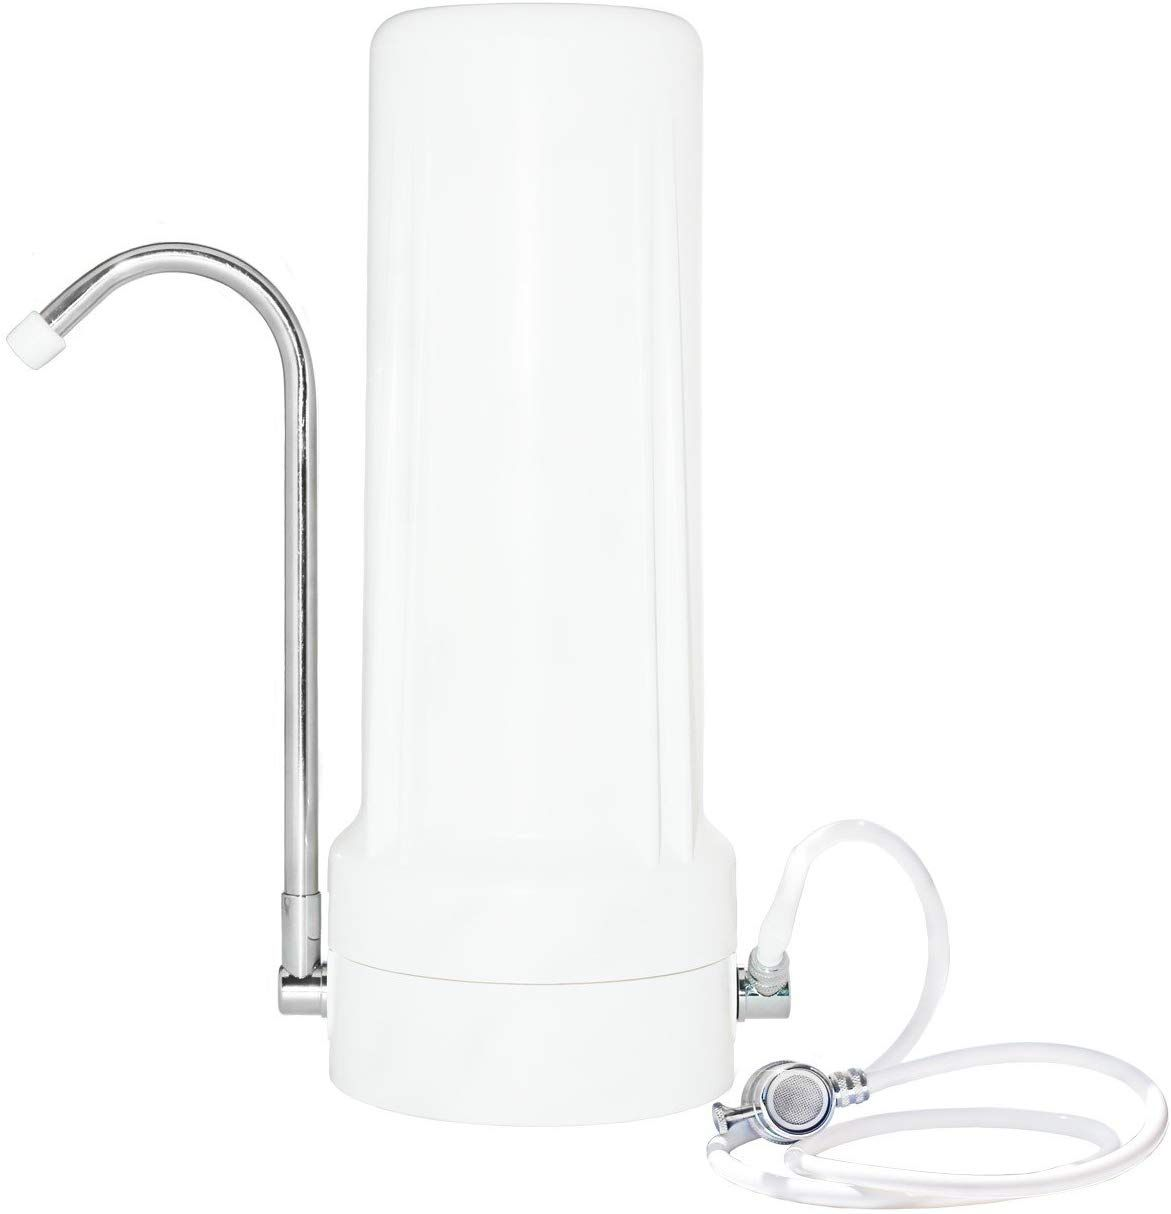 New Wave Enviro 10 Stage Water Filter System review